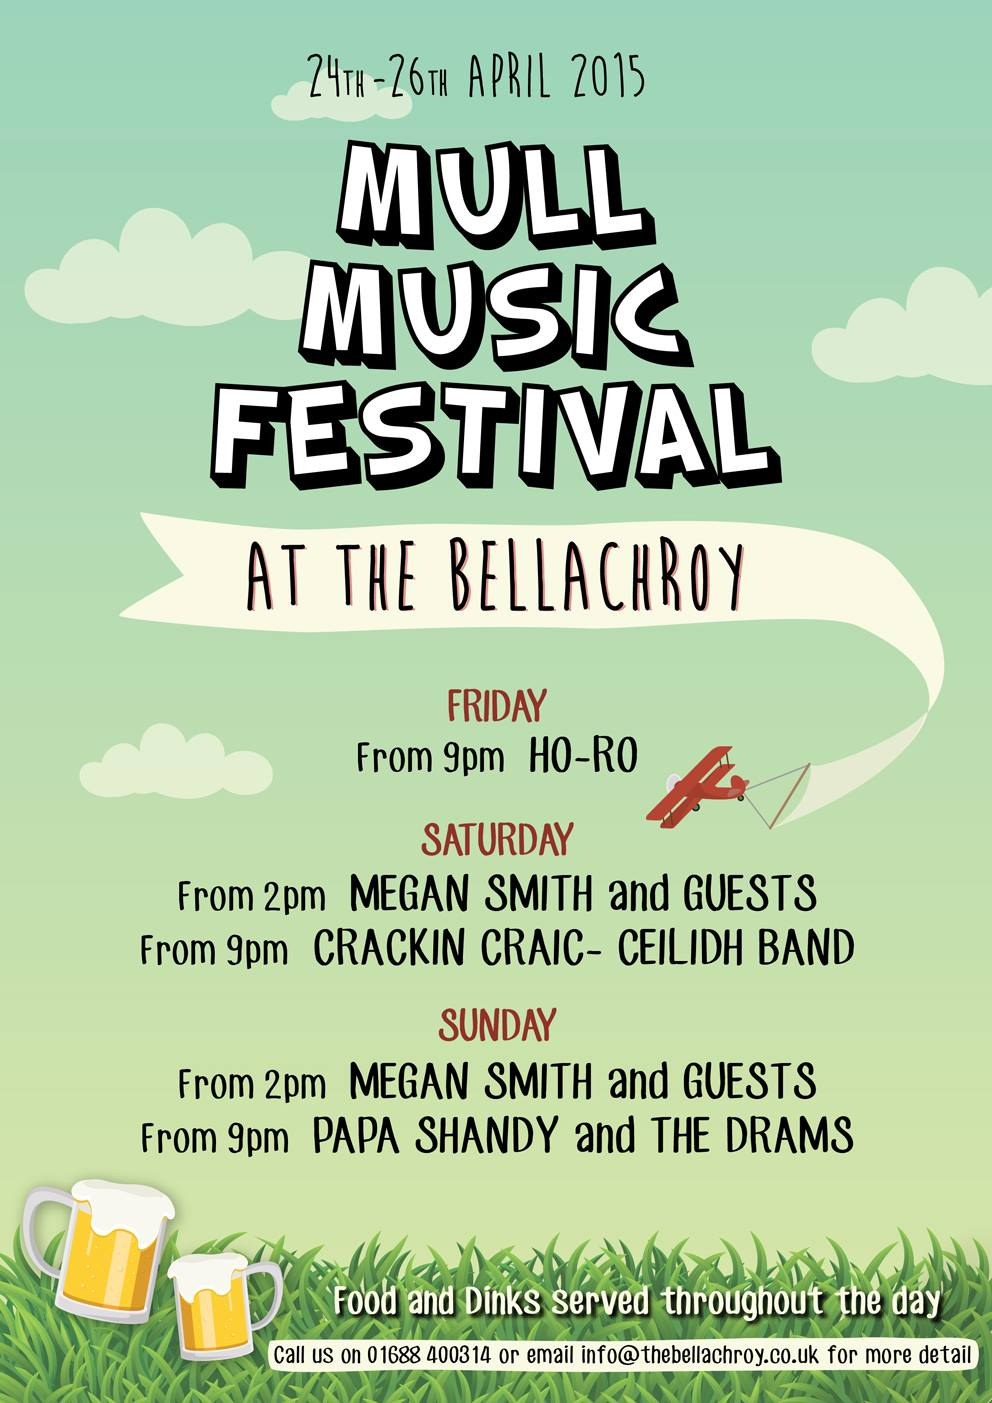 Mull Music Festival programme 2015 at the Bellachroy Hotel